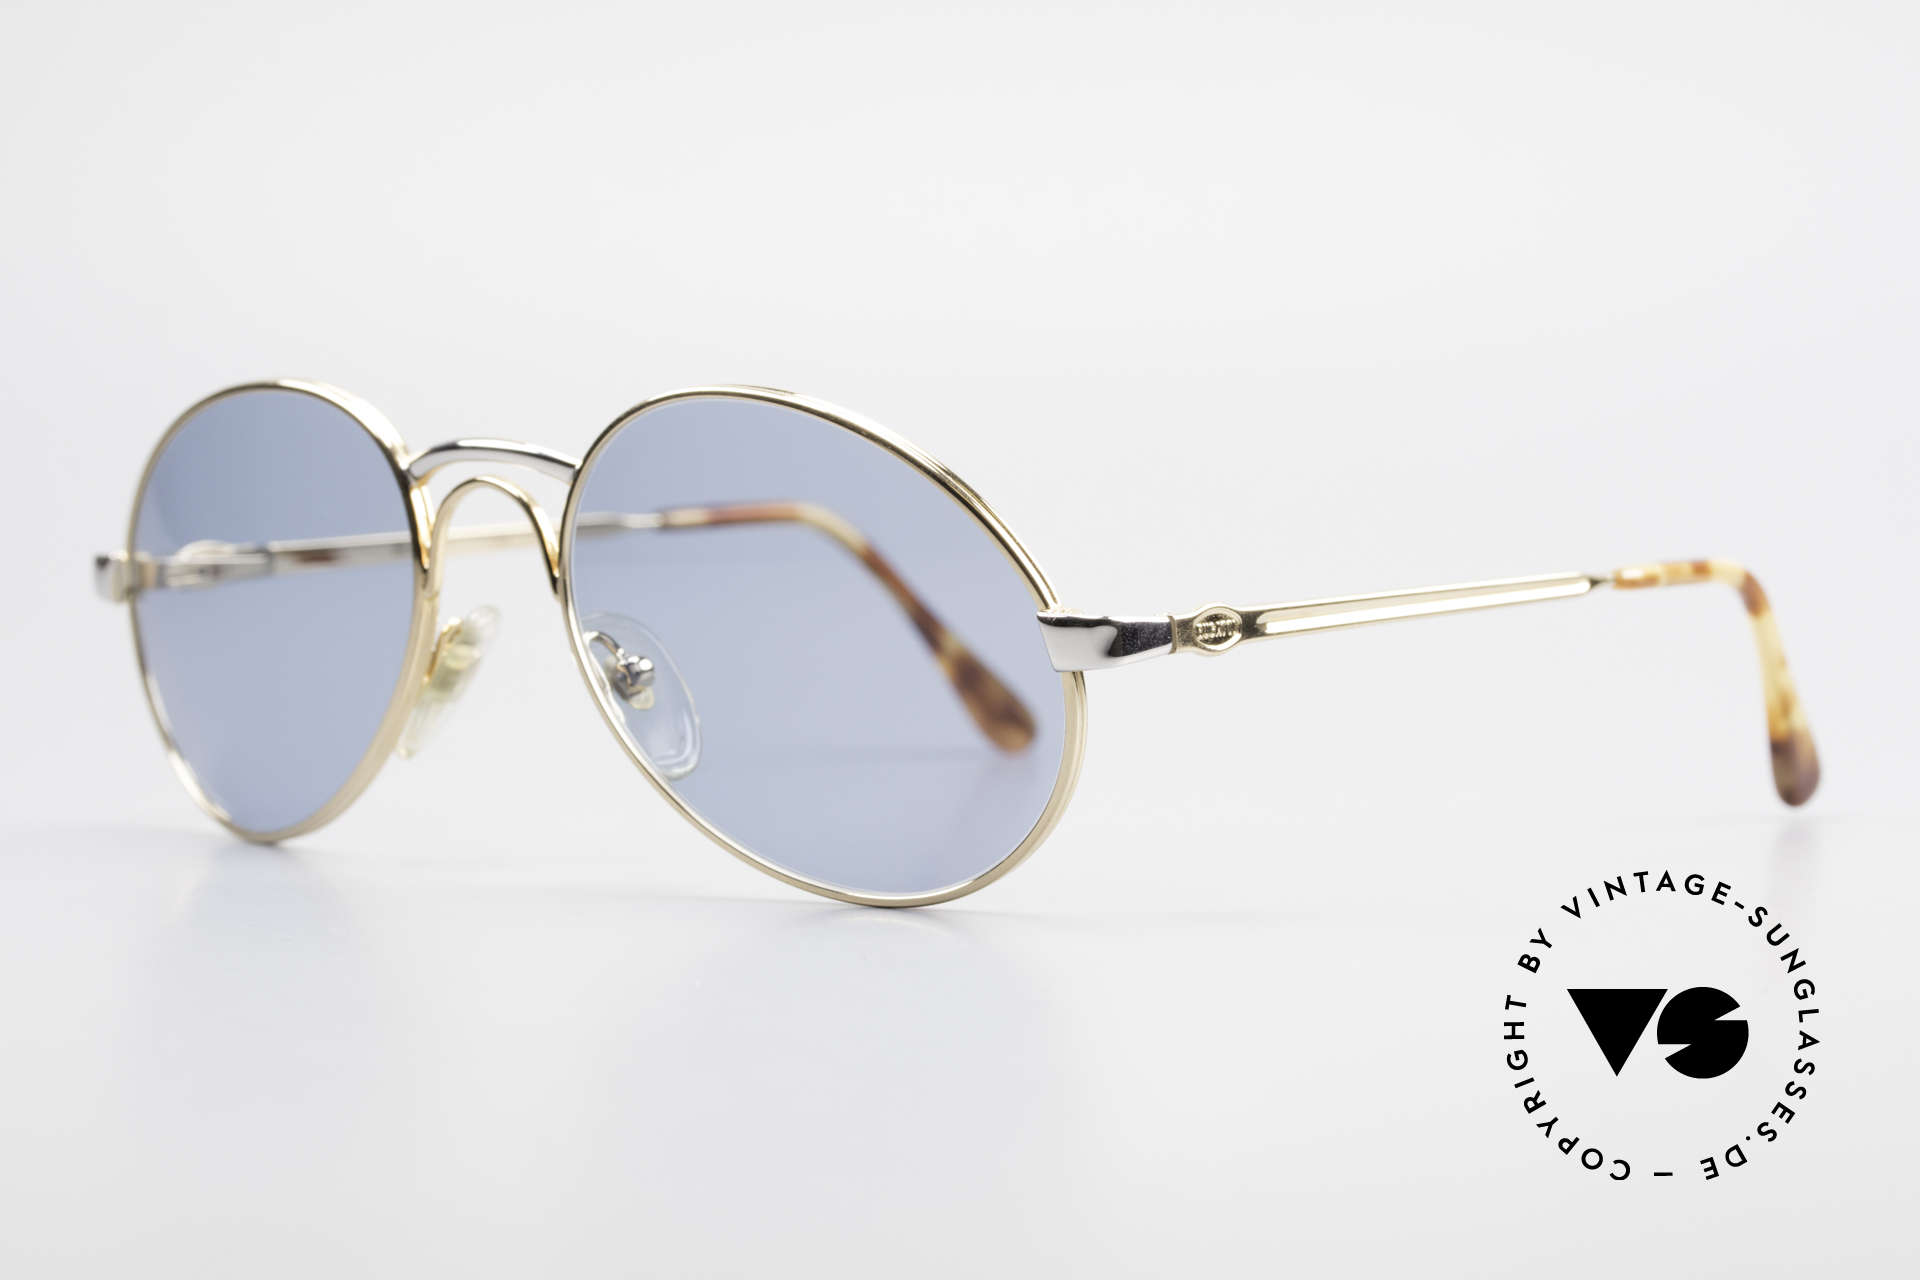 Bugatti 03308 True Vintage 80's Sunglasses, metal frame with spring hinges (1st class comfort), Made for Men